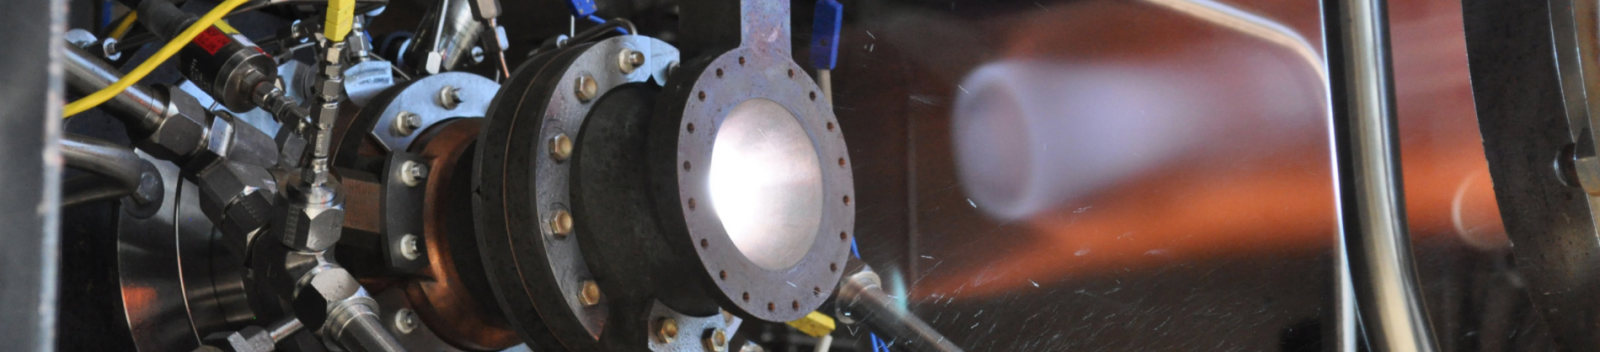 Aerojet Rocketdyne has completed a series of hot fire tests of a thrust chamber manufactured by 3-D printing.